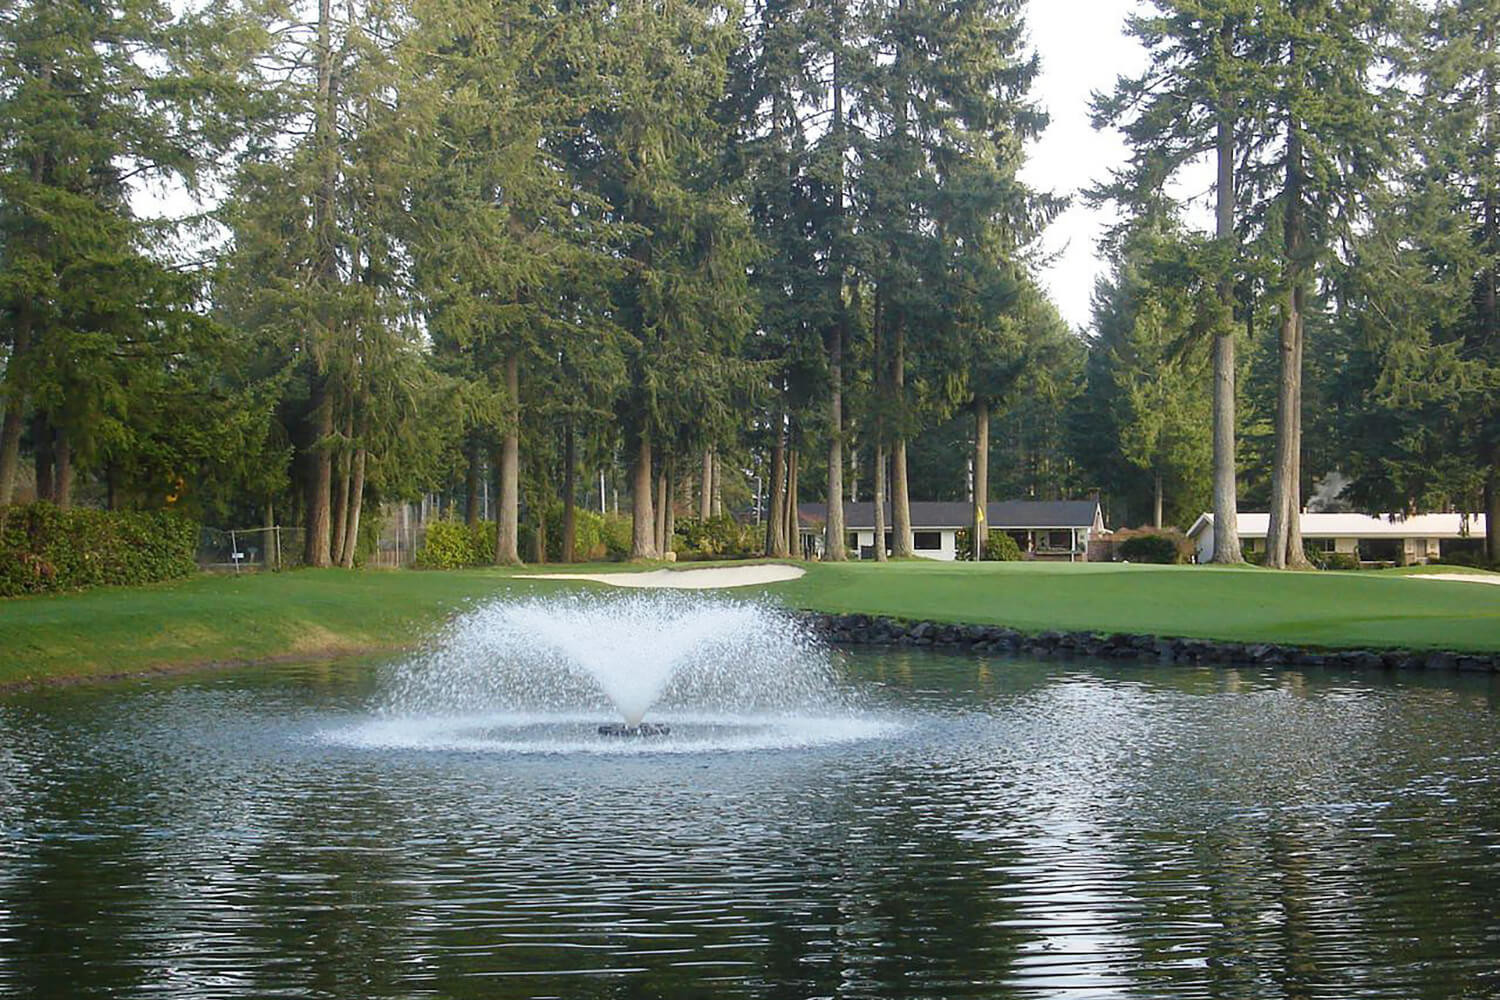 One of Otterbine's Saturn Aerating Fountains at a golf course